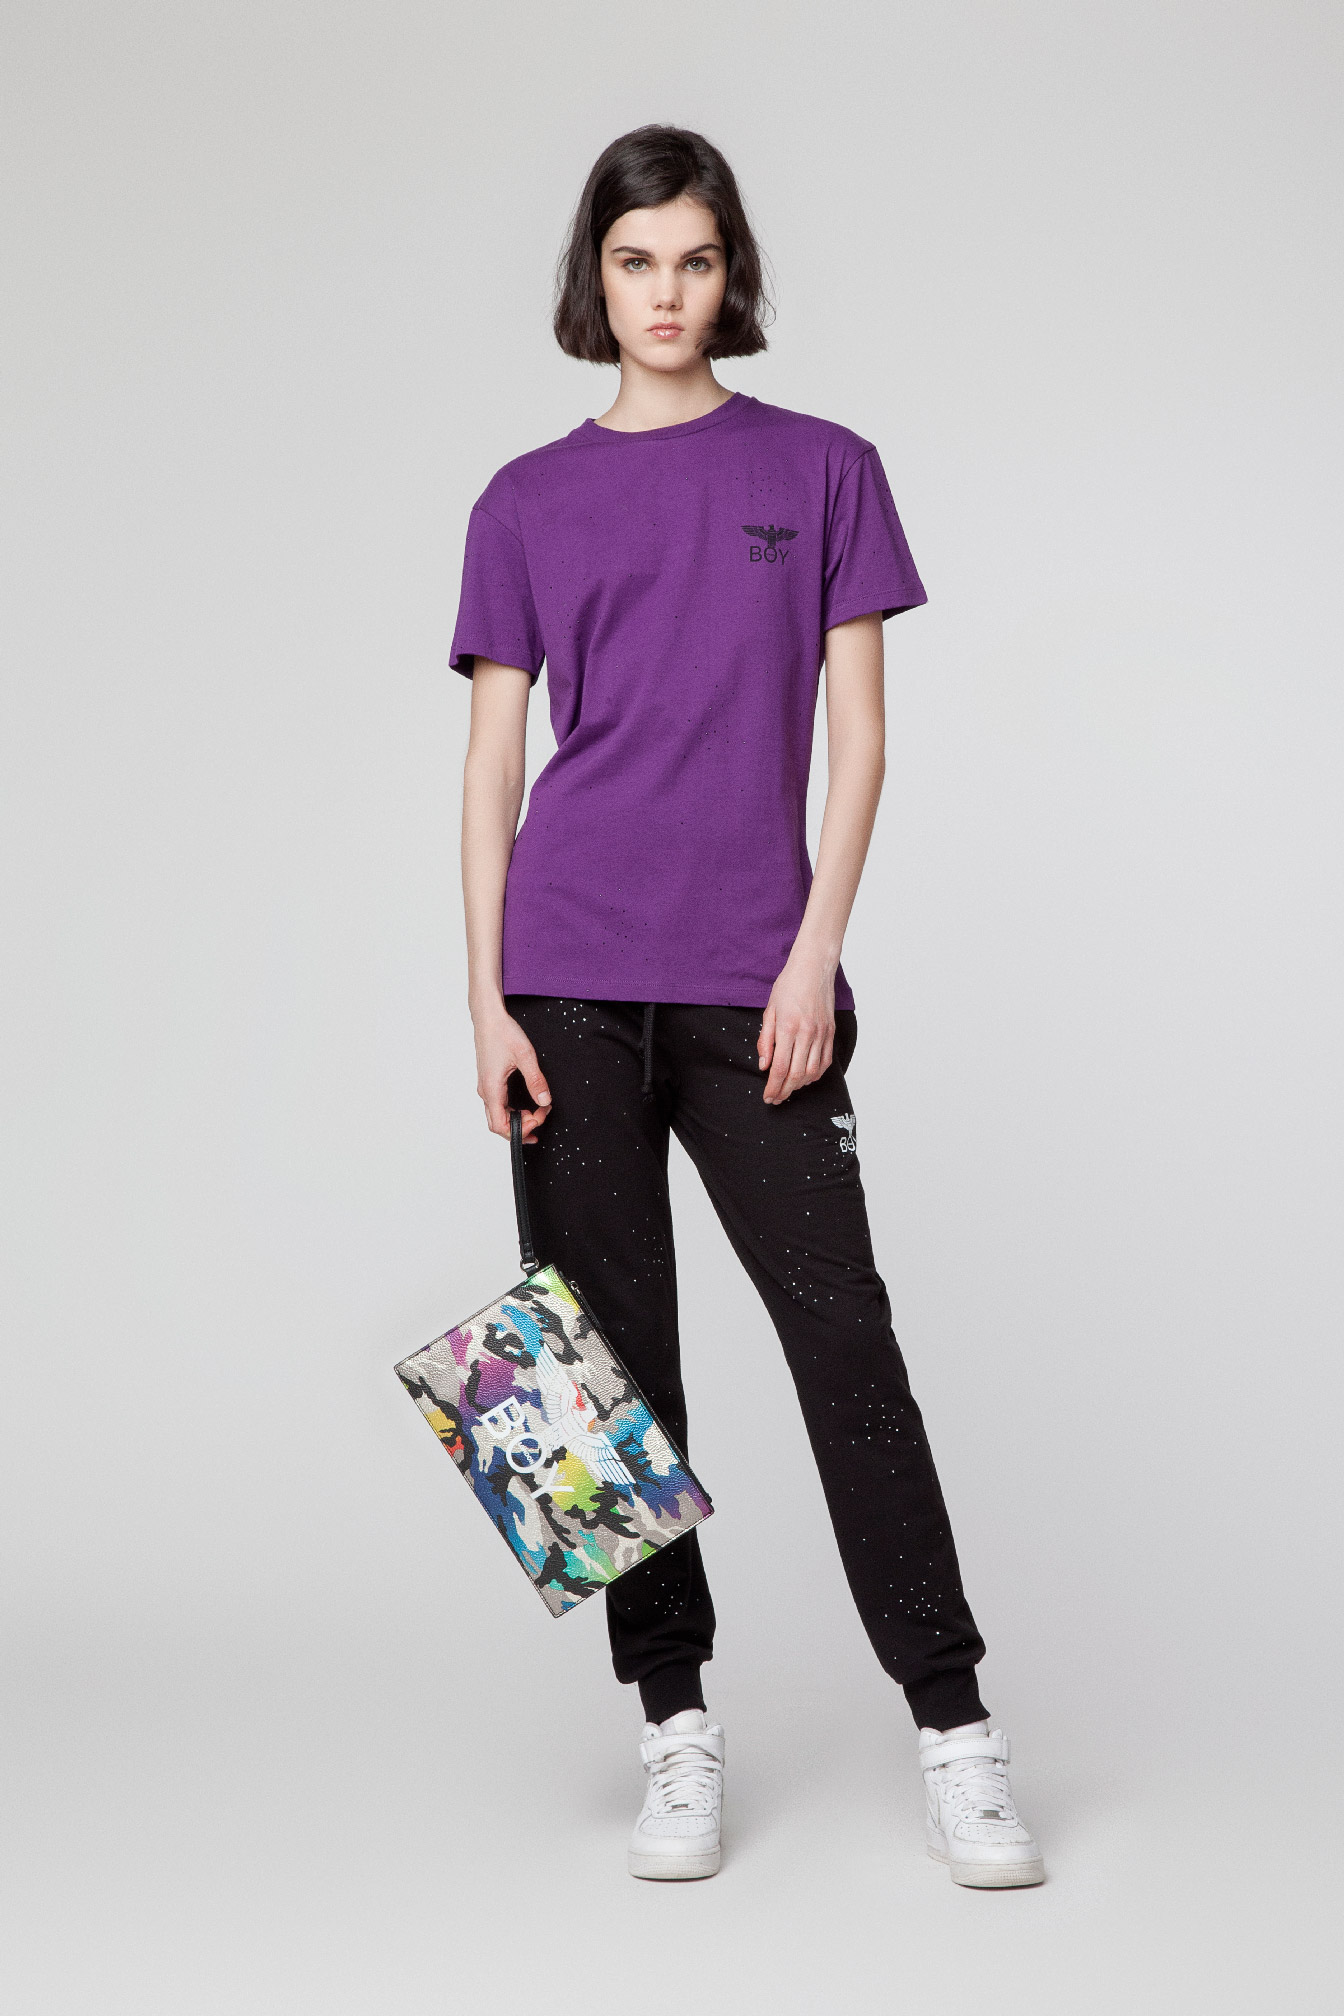 T-SHIRT - BLD2119 - BOY LONDON